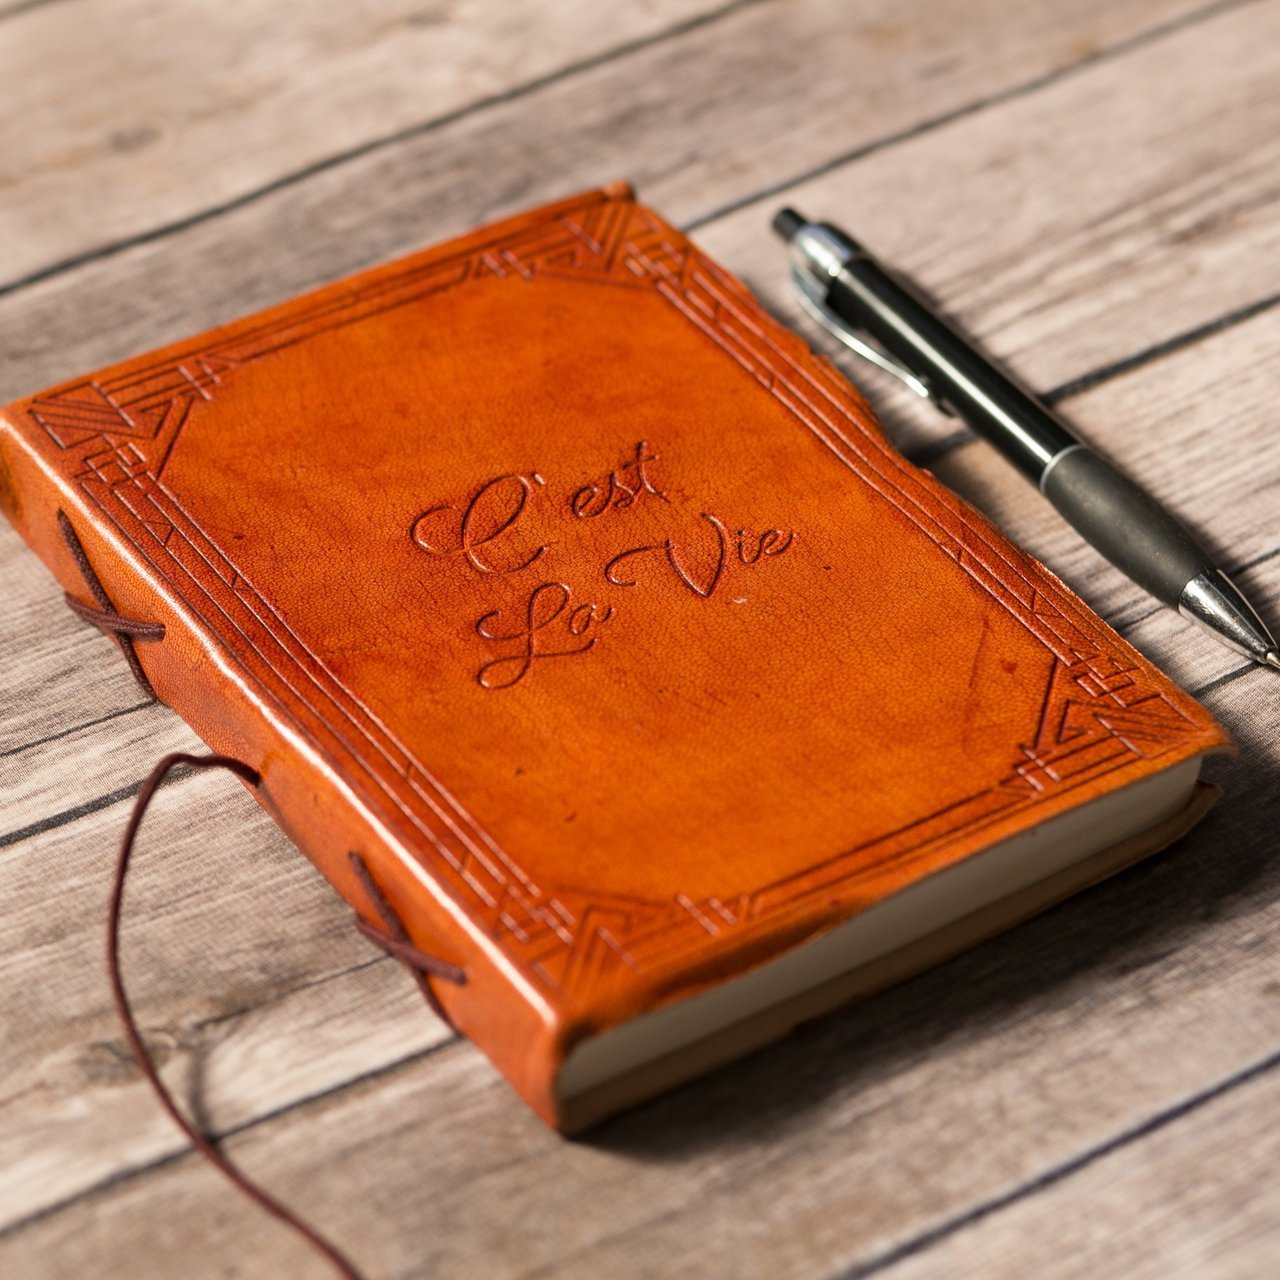 C'est La Vie Leather Journal